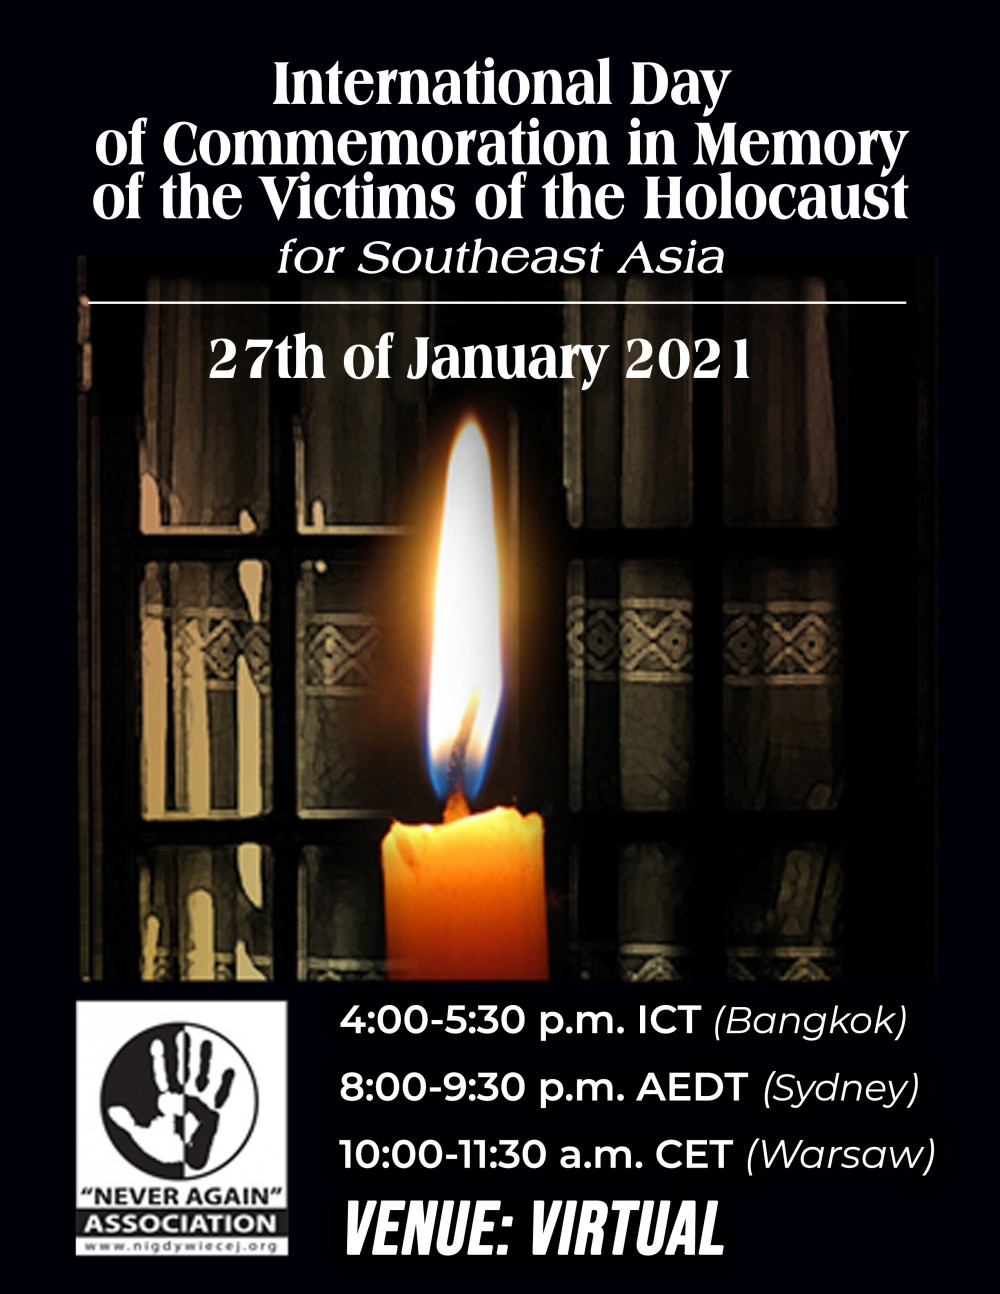 INTERNATIONAL DAY OF COMMEMORATION IN MEMORY OF THE VICTIMS OF THE HOLOCAUST FOR SOUTHEAST ASIA